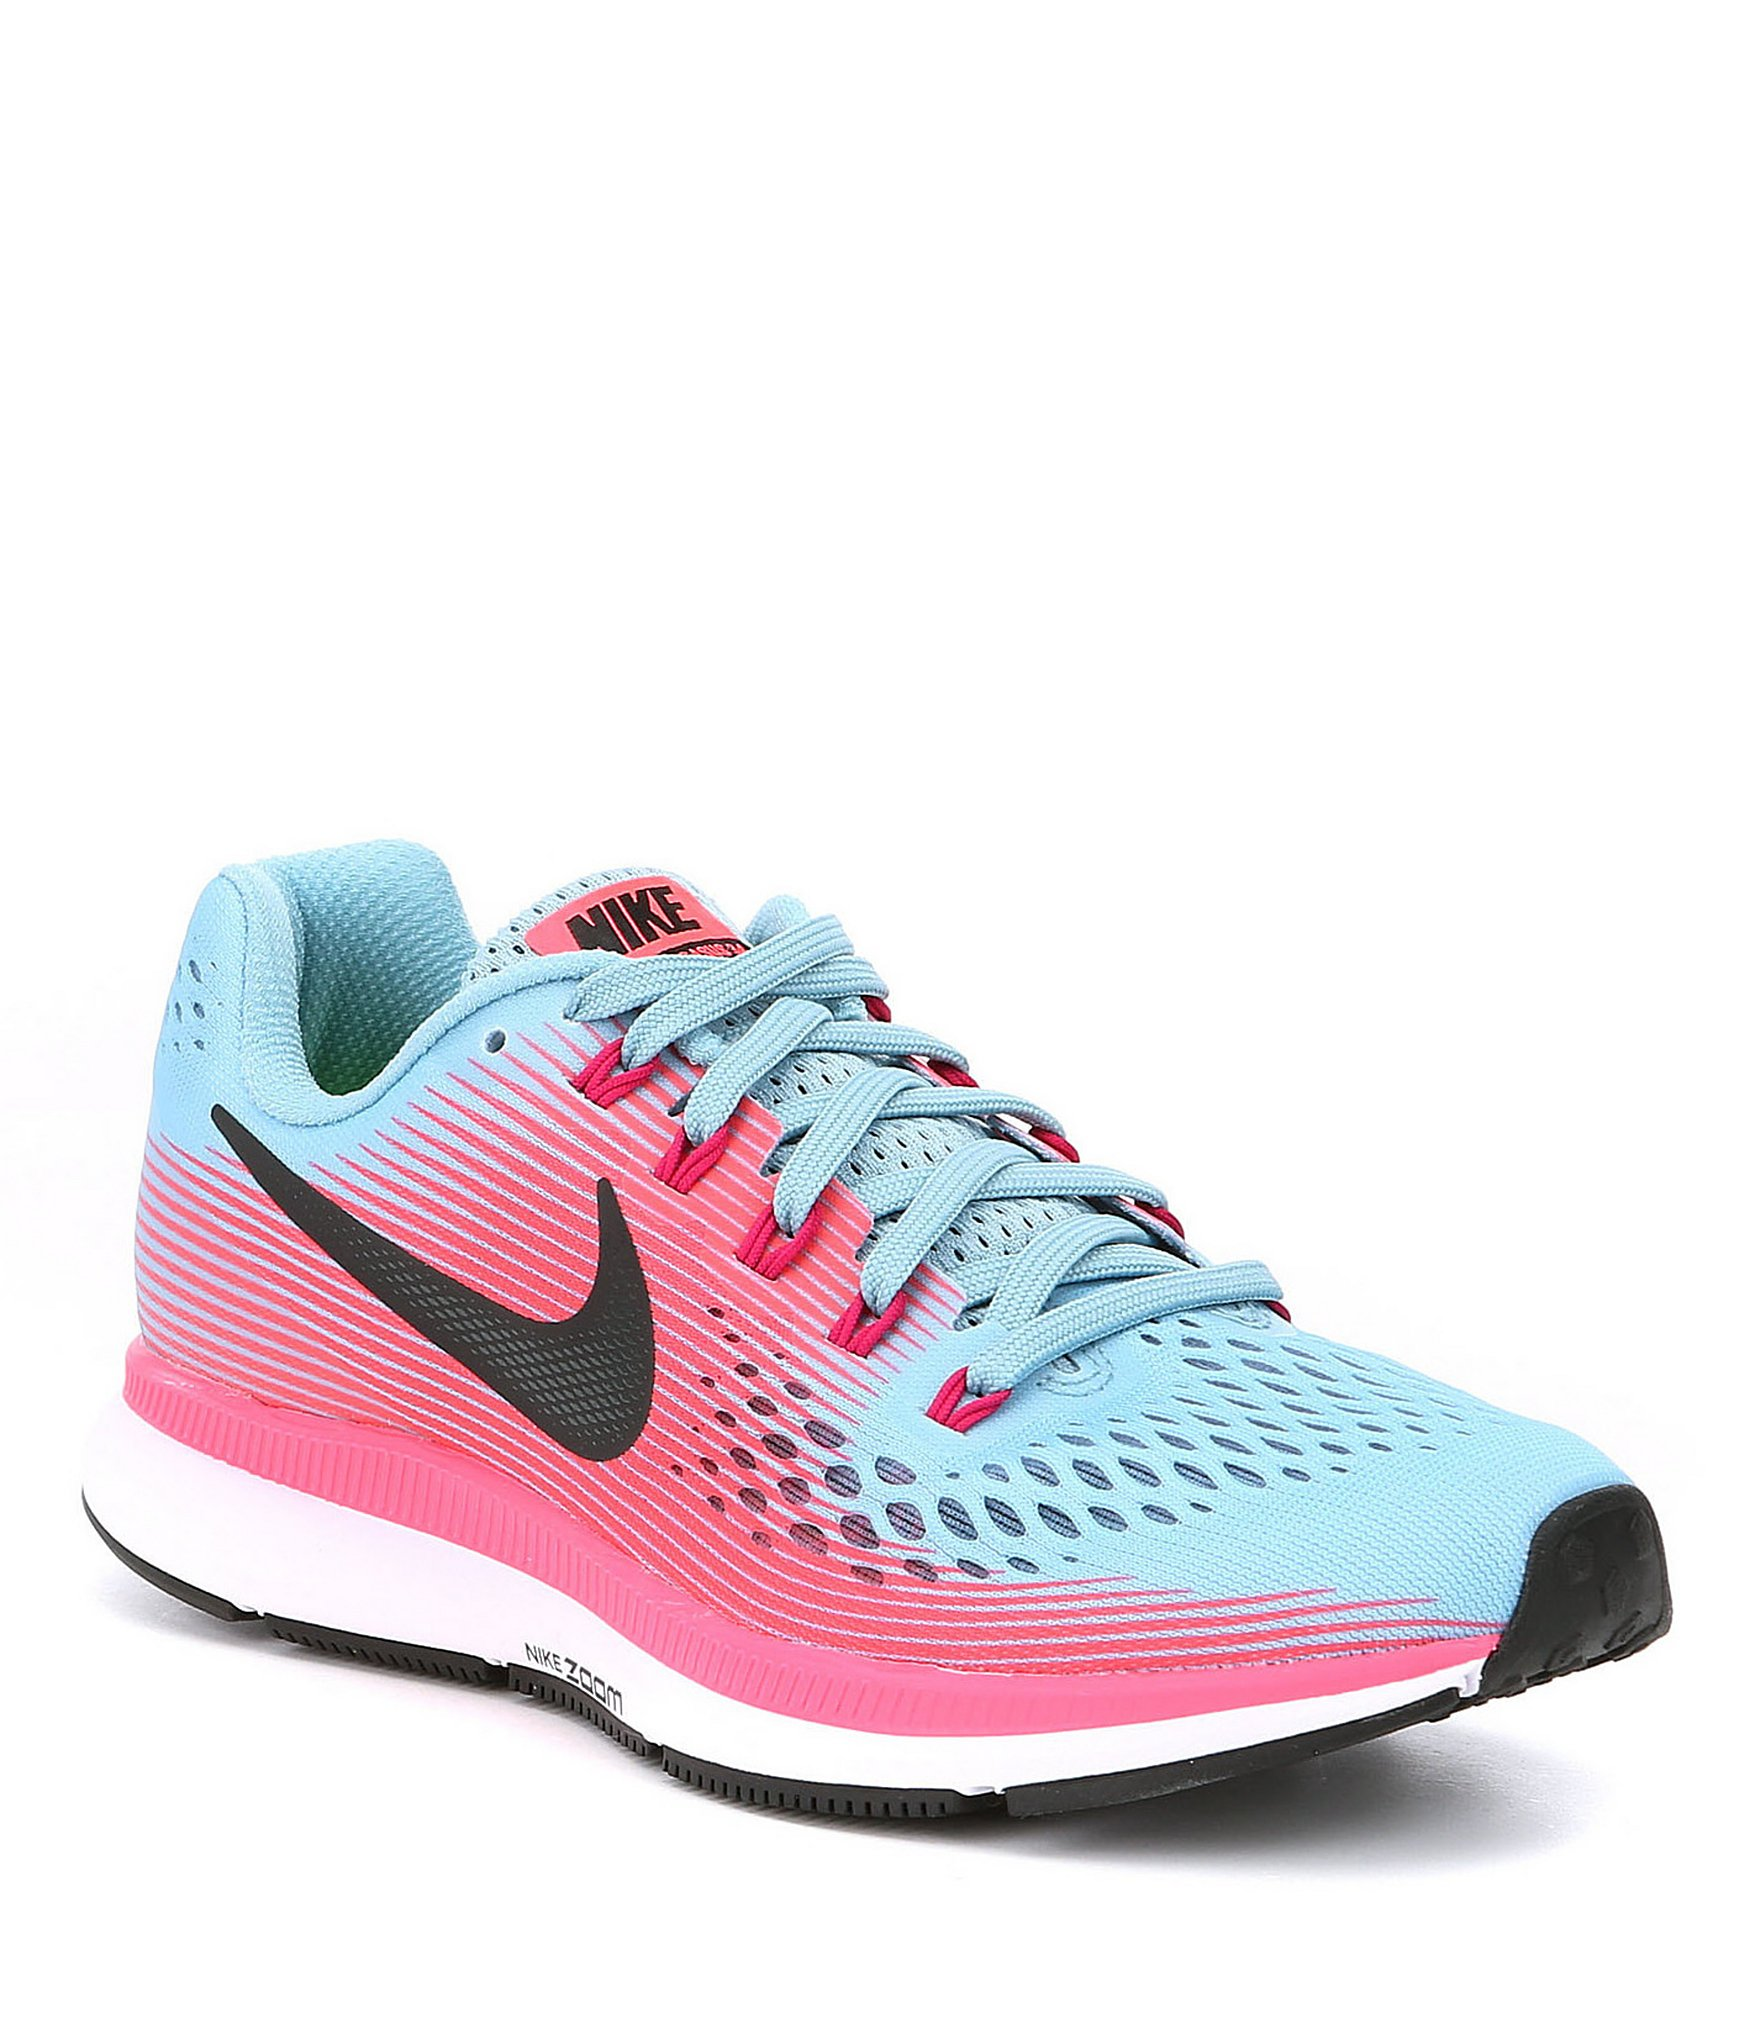 3252bbe3251 Pink Nike Running Shoes   Buy Nike Sneakers   Shoes